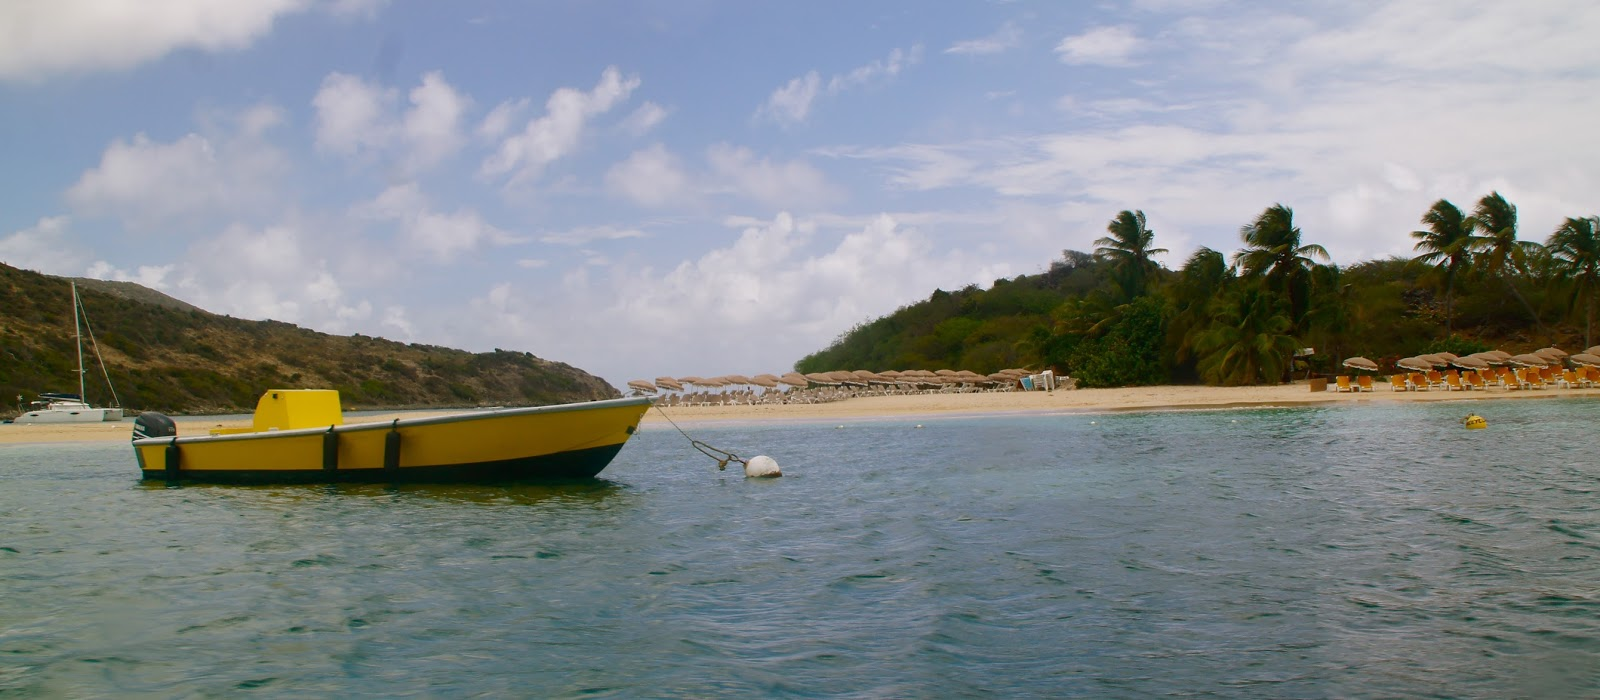 Ferry From Marigot To Pinel Island